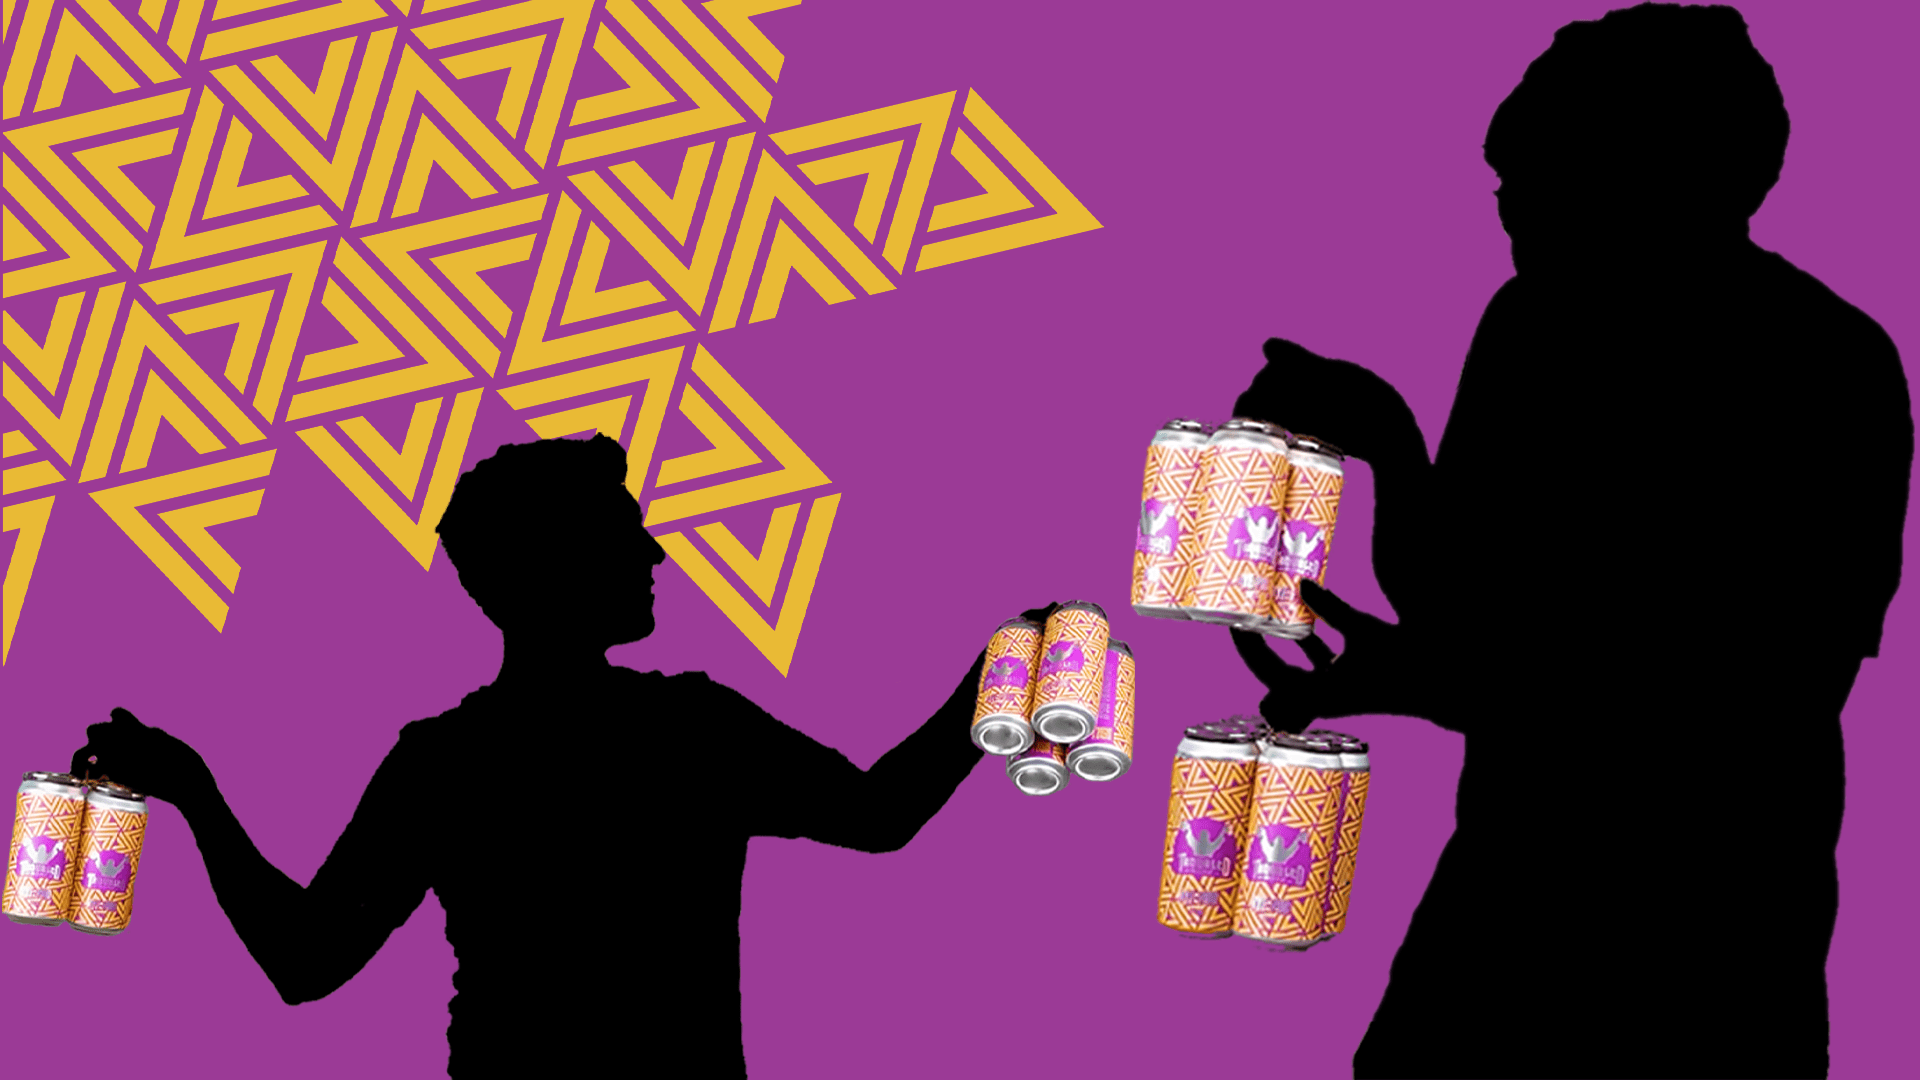 Image of Rye-Pod beer mimicking the early Iphone ads with a silhouette of a man holding up the beer and a purple and gold background